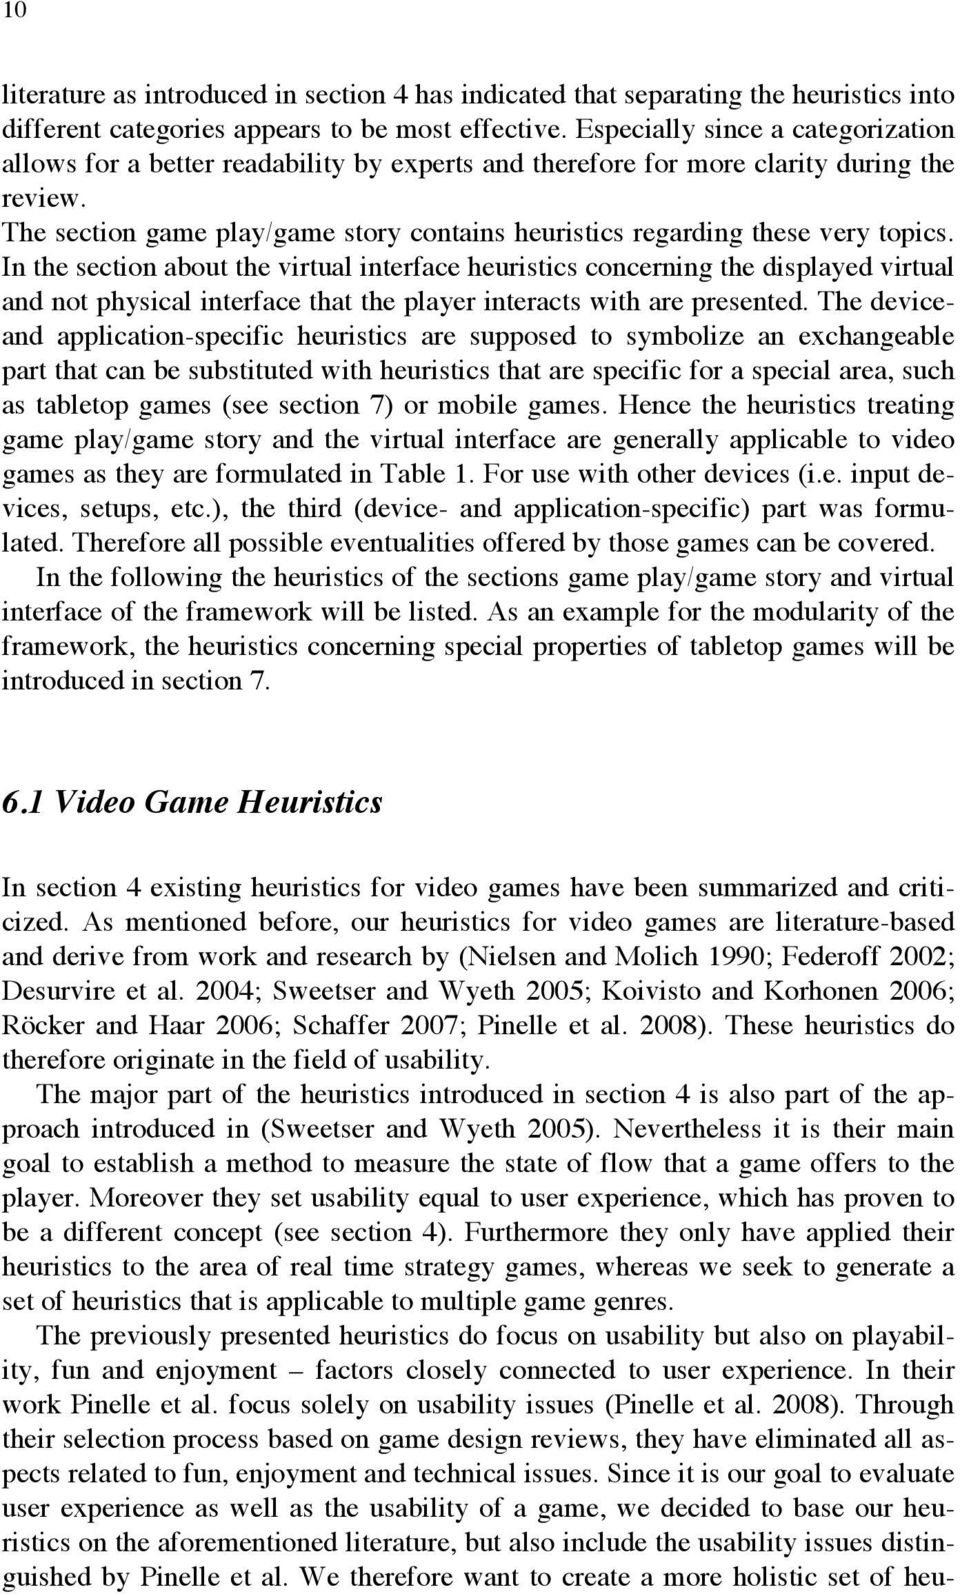 The section game play/game story contains heuristics regarding these very topics.